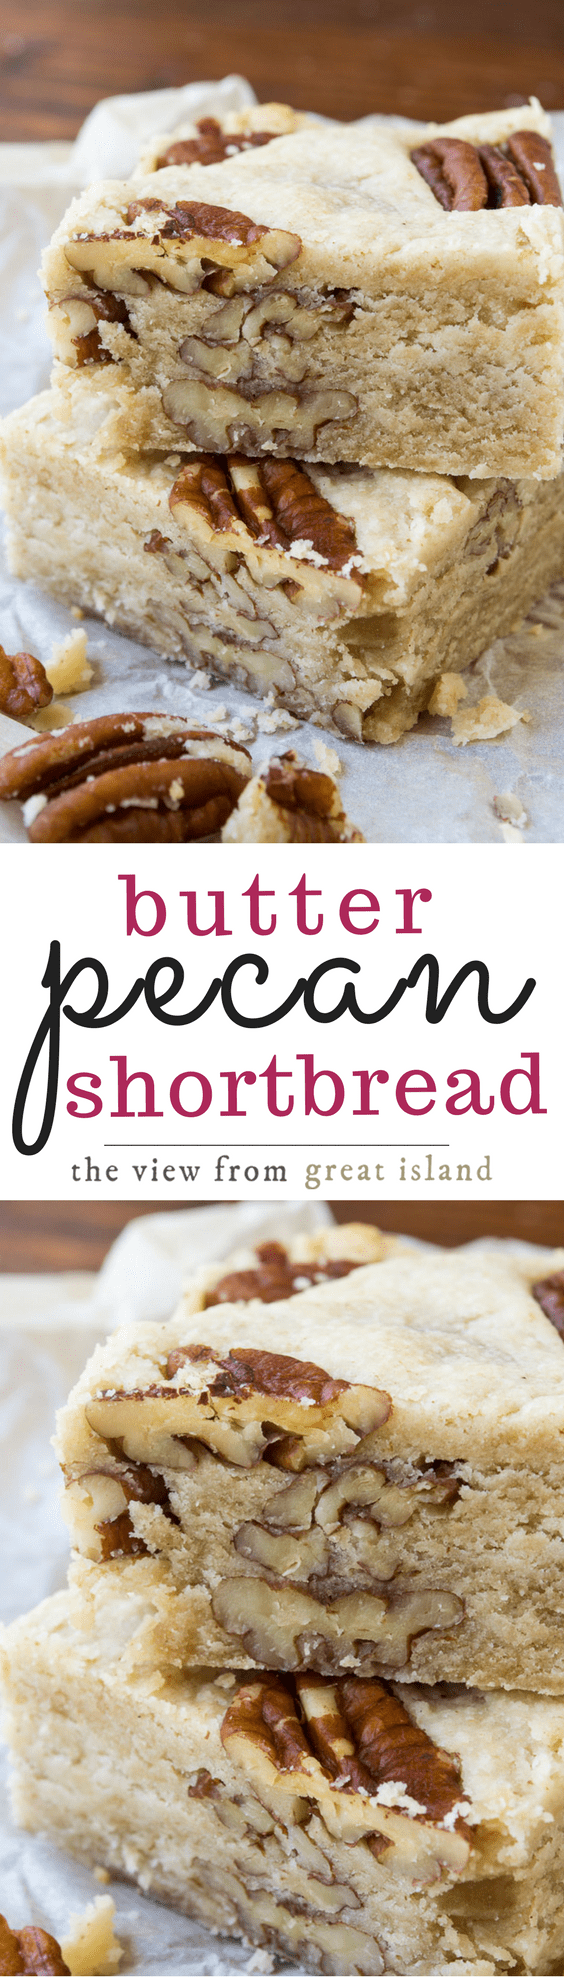 Butter Pecan Shortbread is a classic buttery shortbread loaded up with crunchy pecans ~ yum!